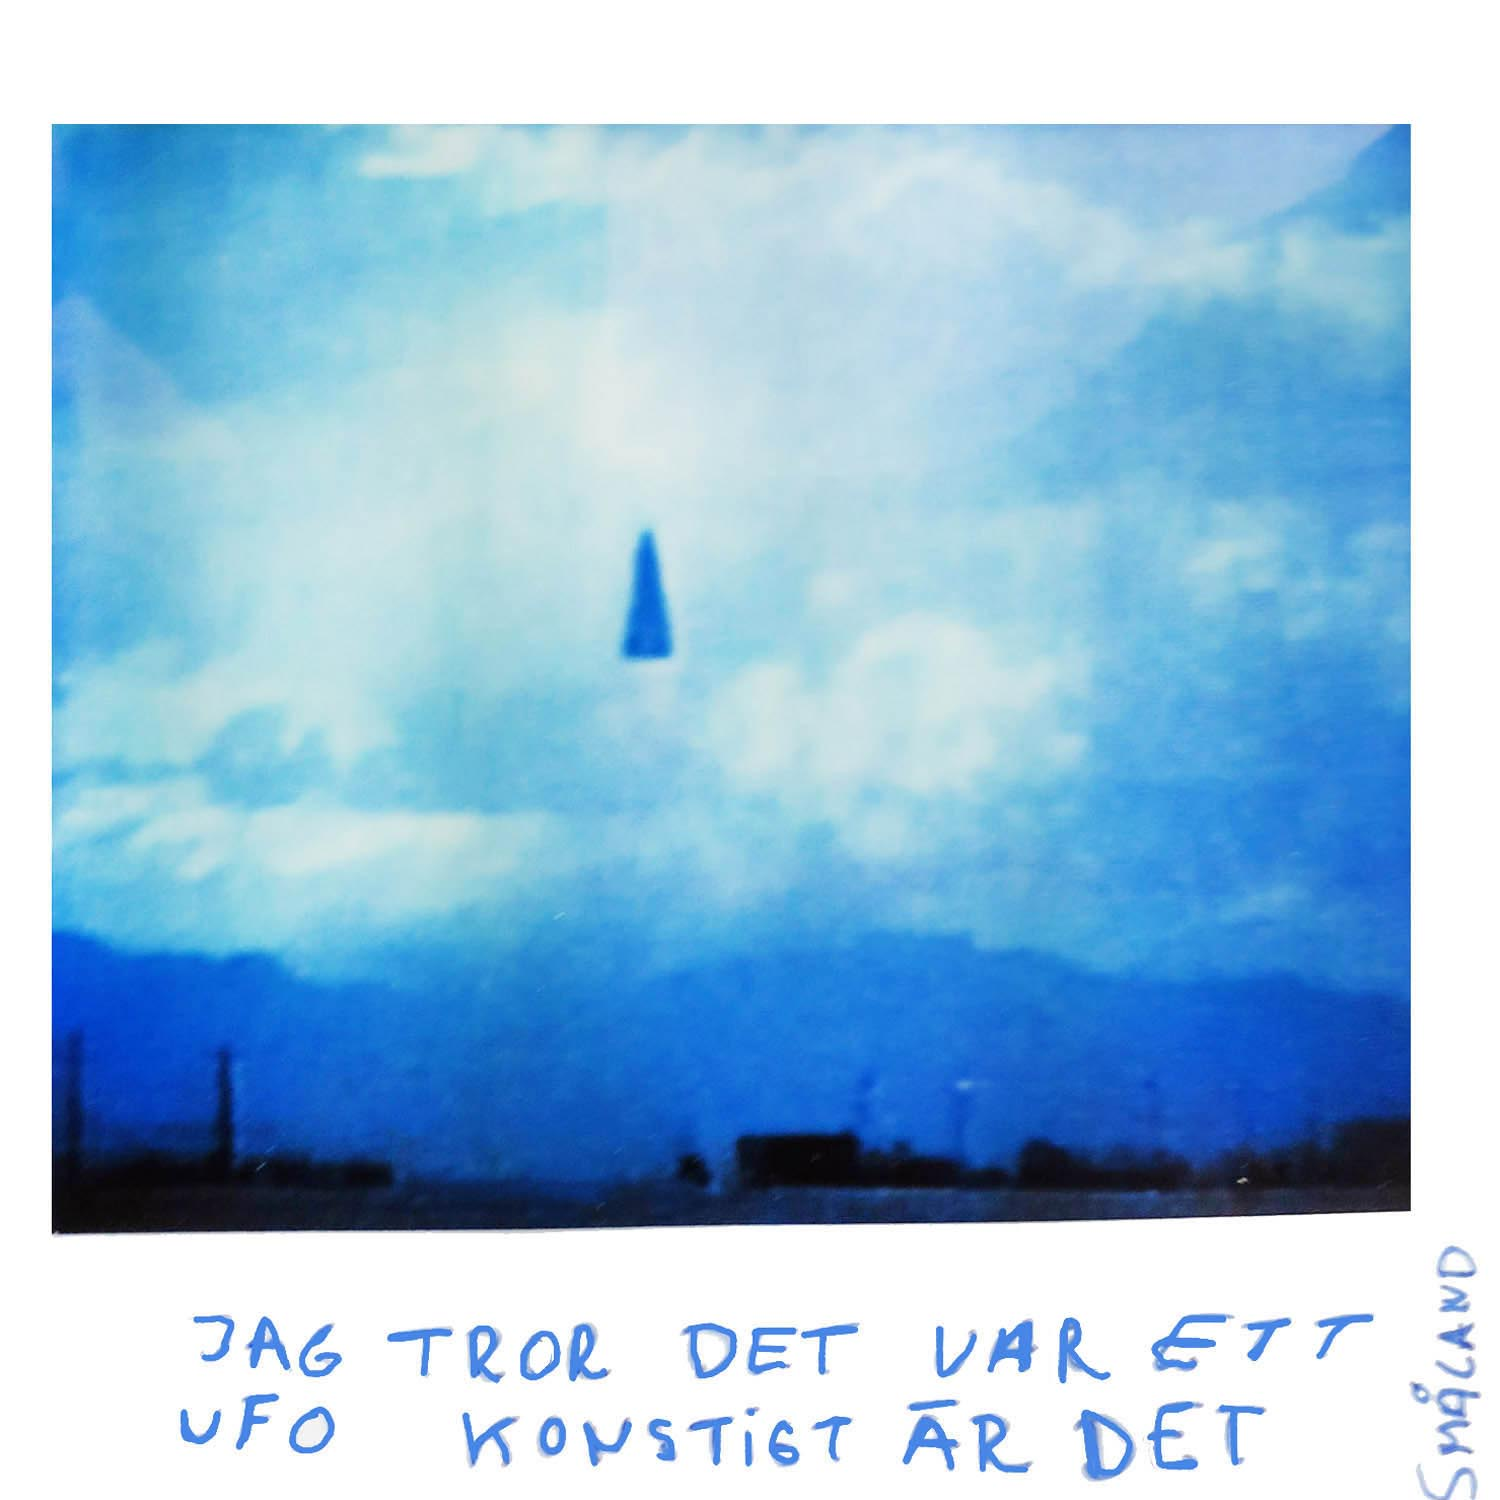 I think it was an UFO .. strange it was  Småland